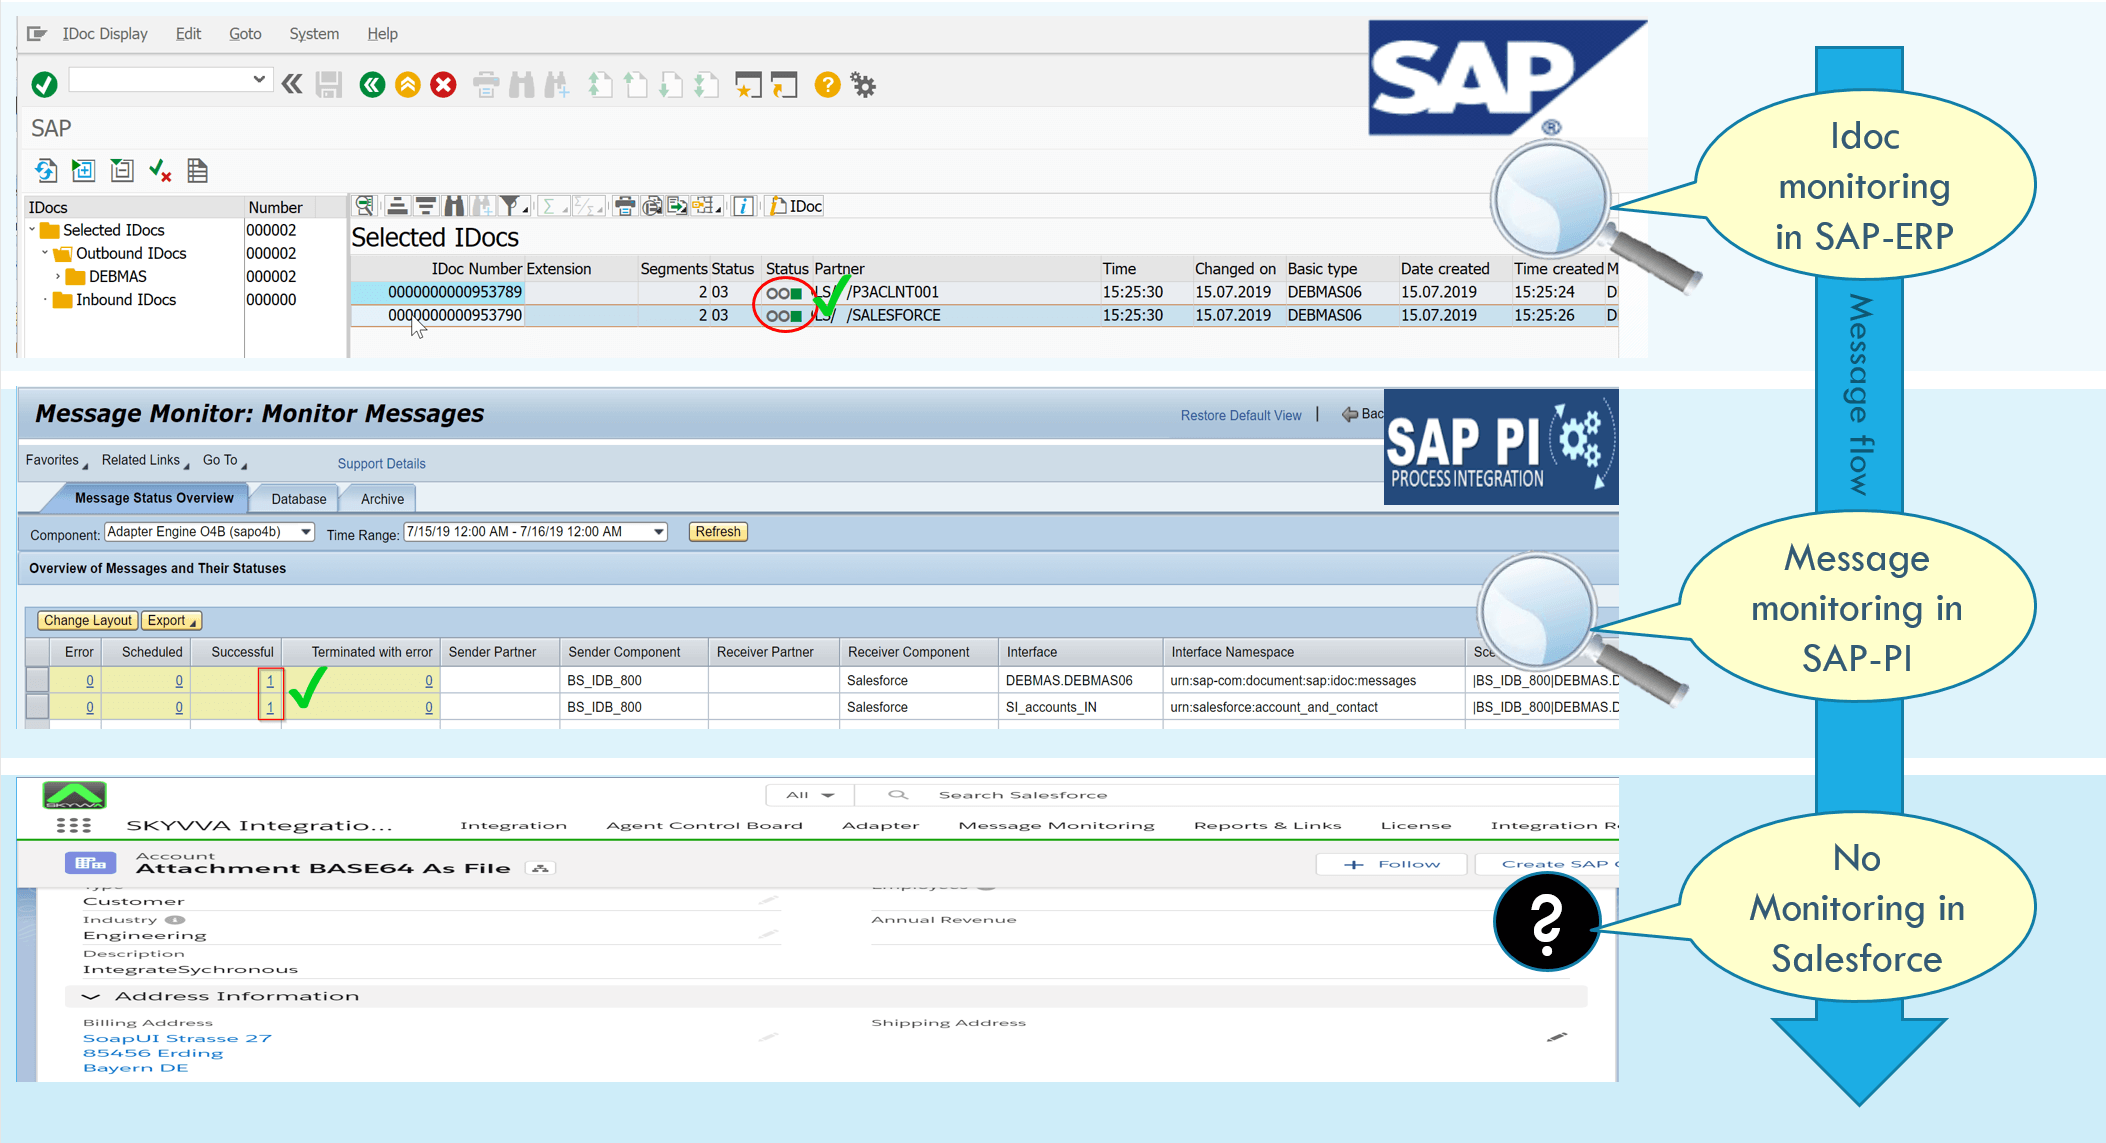 Monitoring SAP-ERP